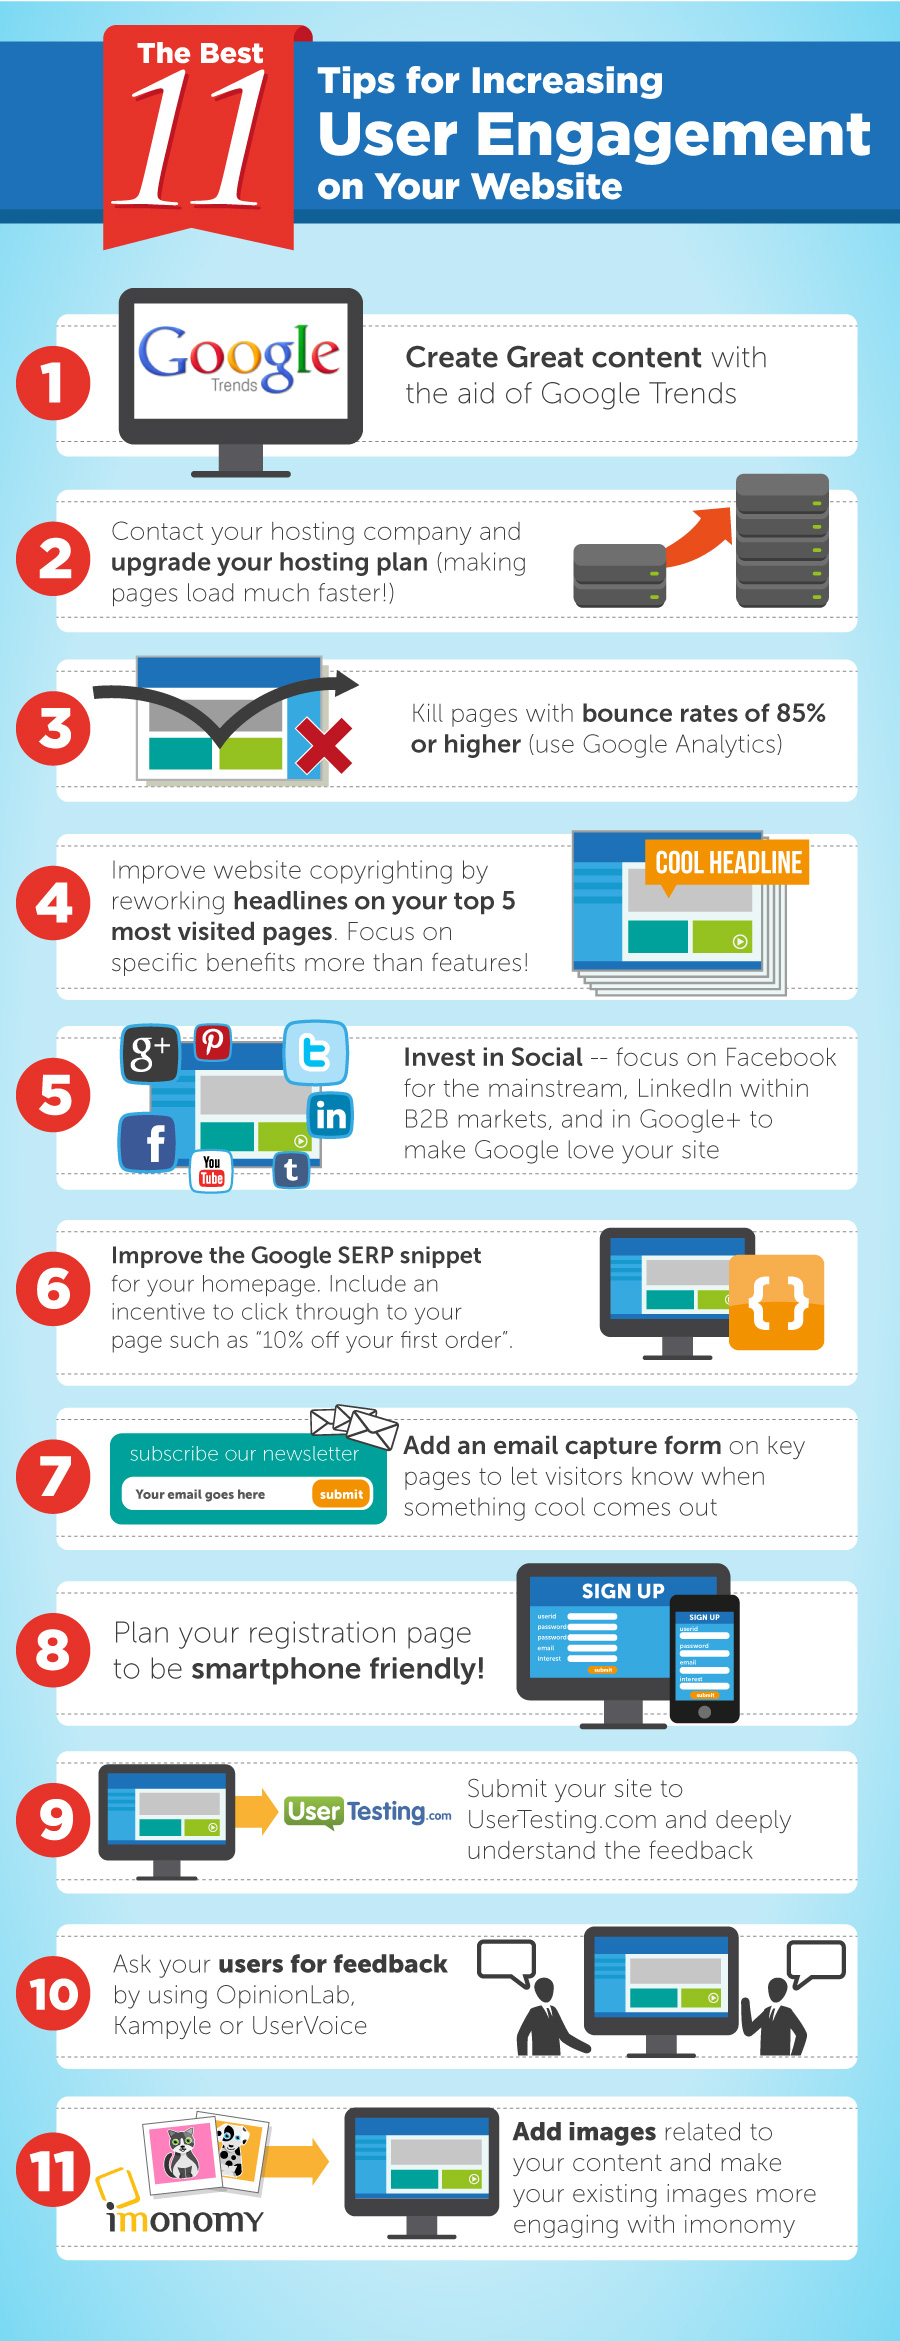 Best 11 Tips for Increasing User Engagement (Infographic)